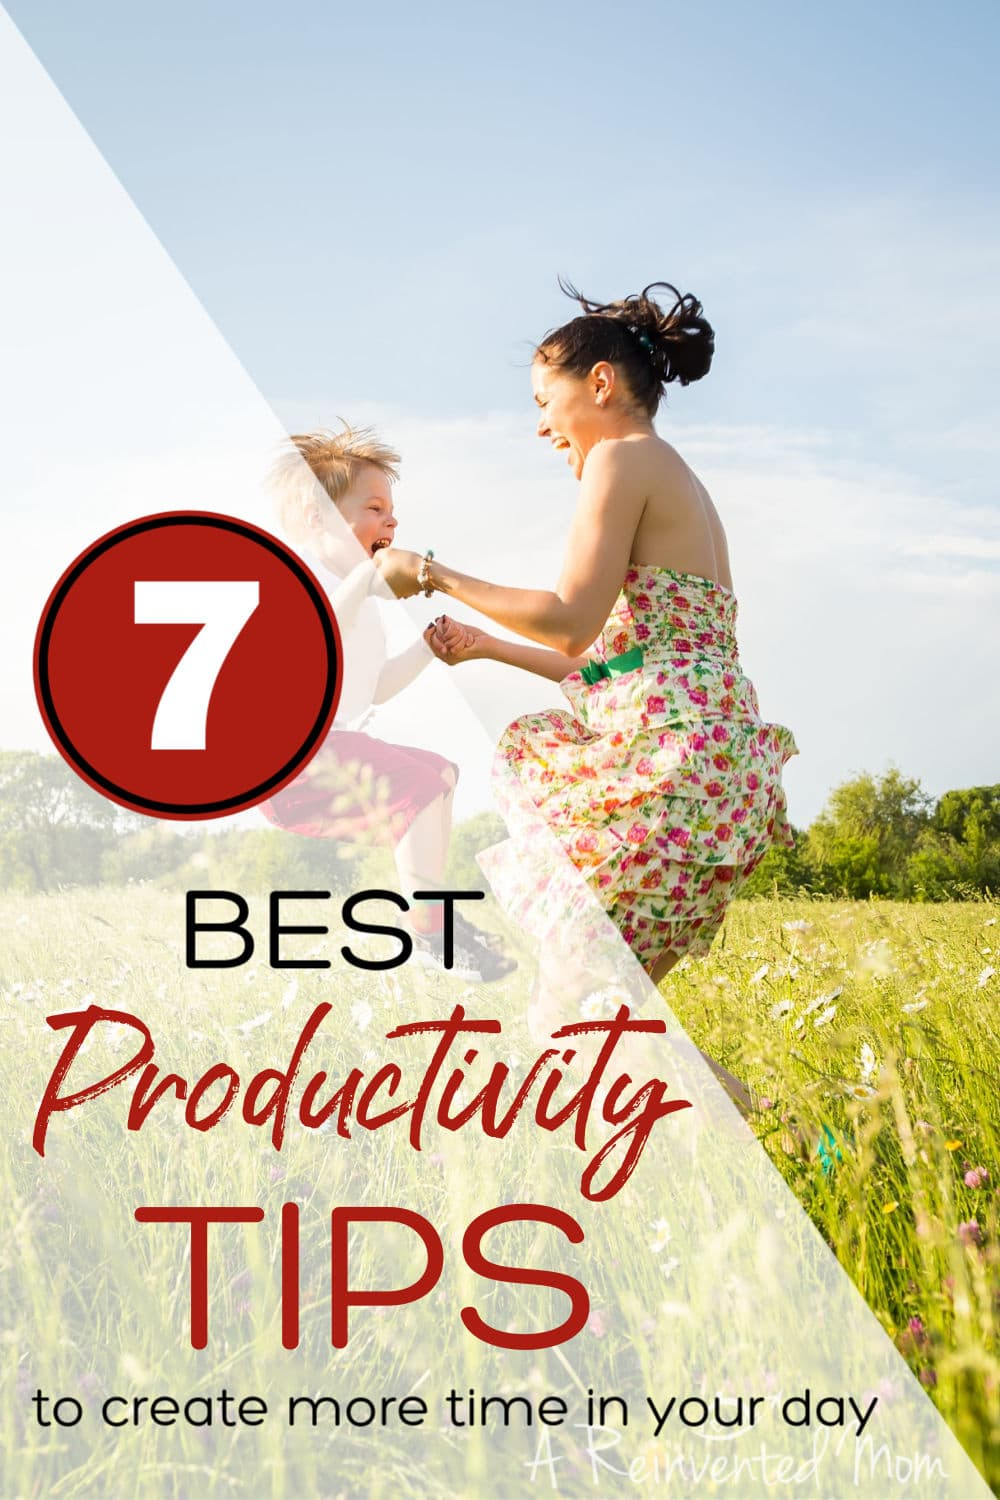 Find free time in your day with my BEST Productivity tips | A Reinvented Mom #productivity #momlife #timemanagement #areinventedmom